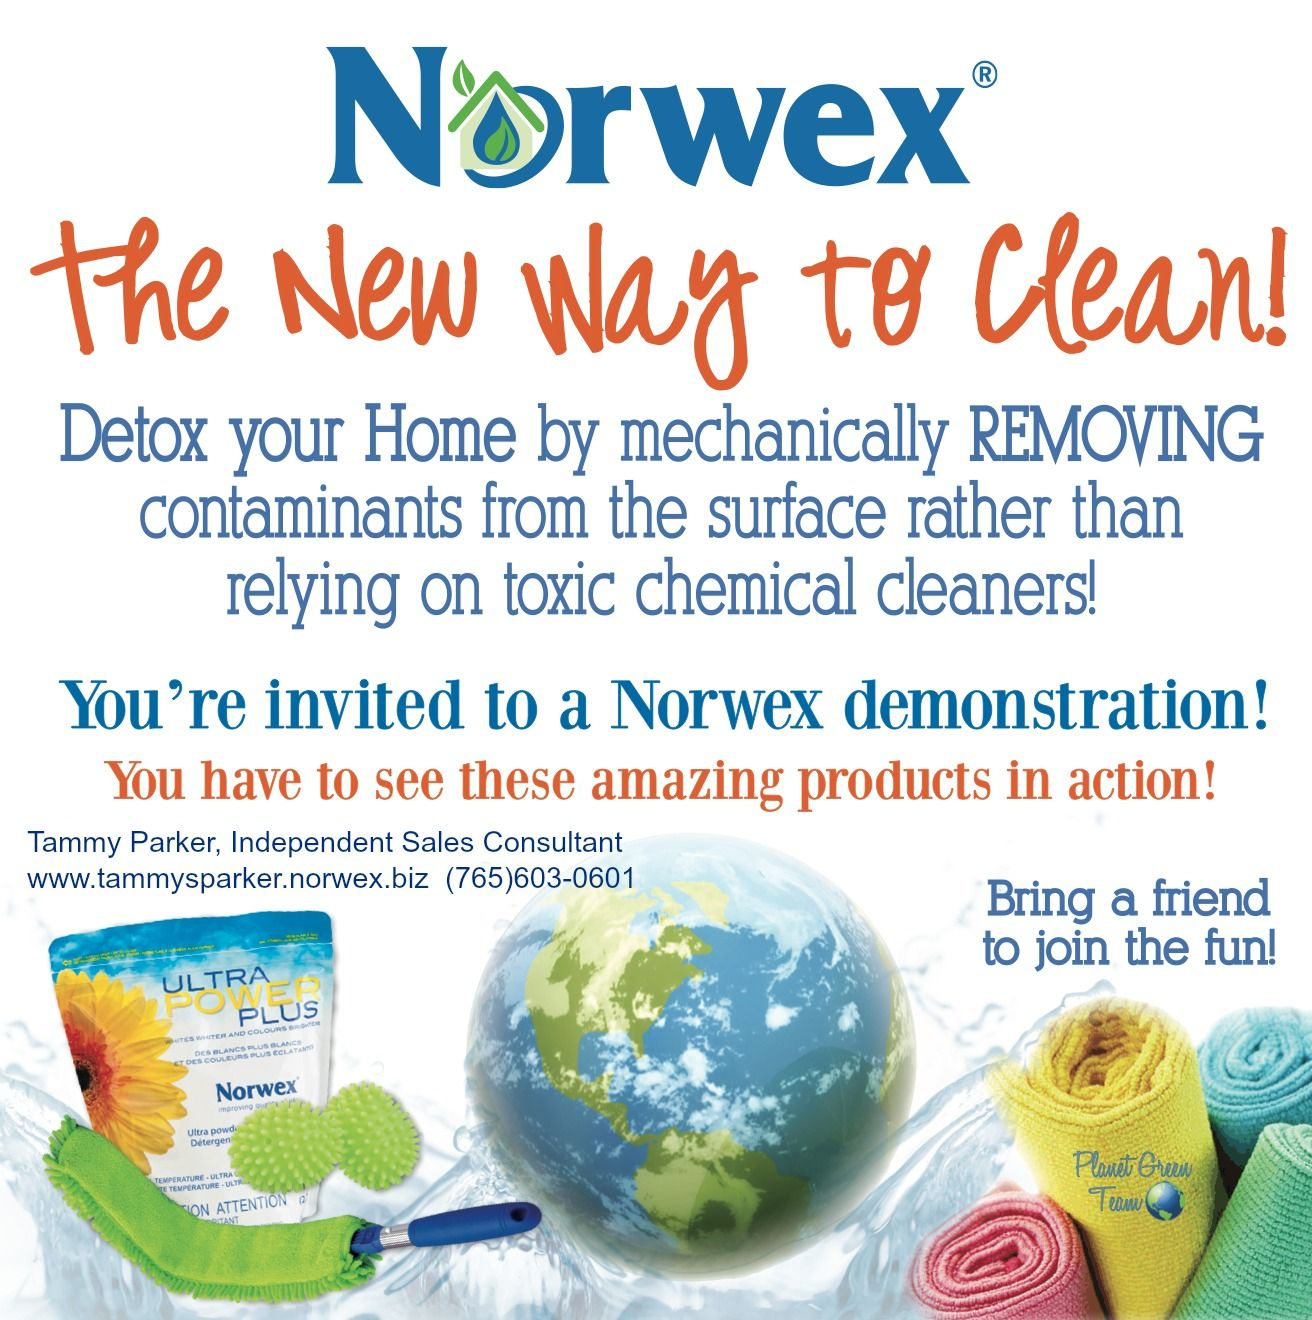 Pin by Tammy Parker on Norwex party invites | Pinterest | Norwex party